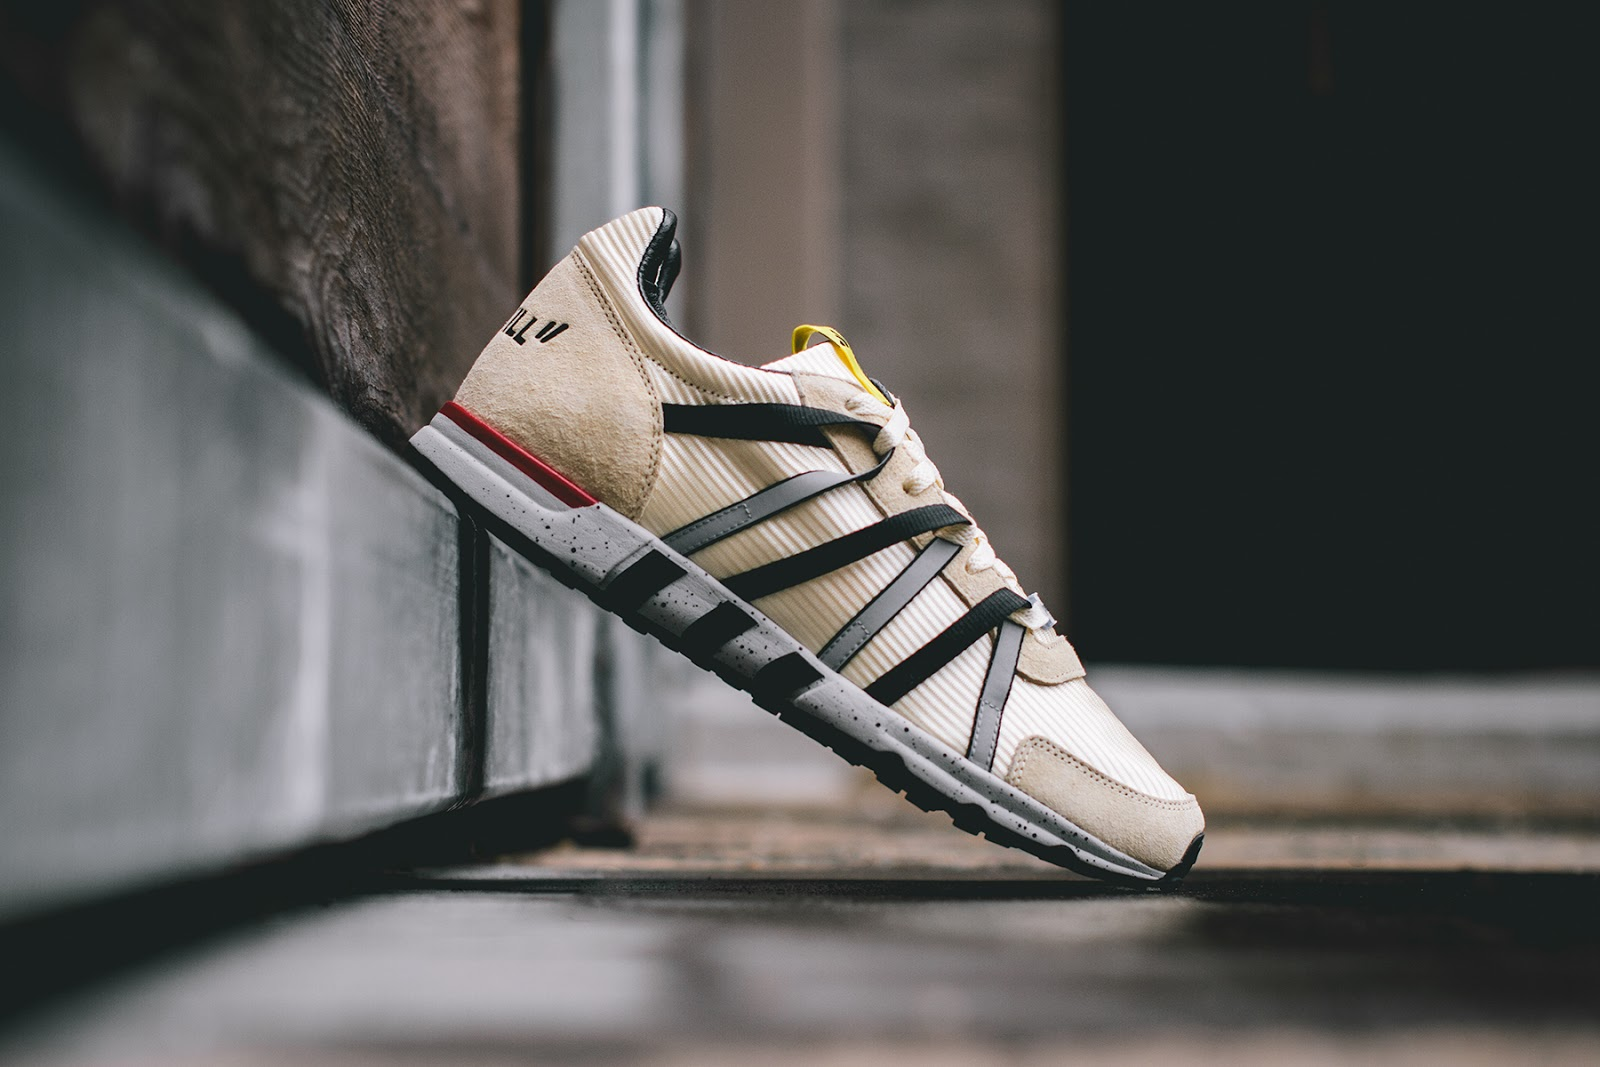 best service 8af6c d2aee Straight out of Berlin comes this runner from sneaker boutique Overkill in  collaboration with adidass Consortium line. The sneaker is inspired by  taxis ...